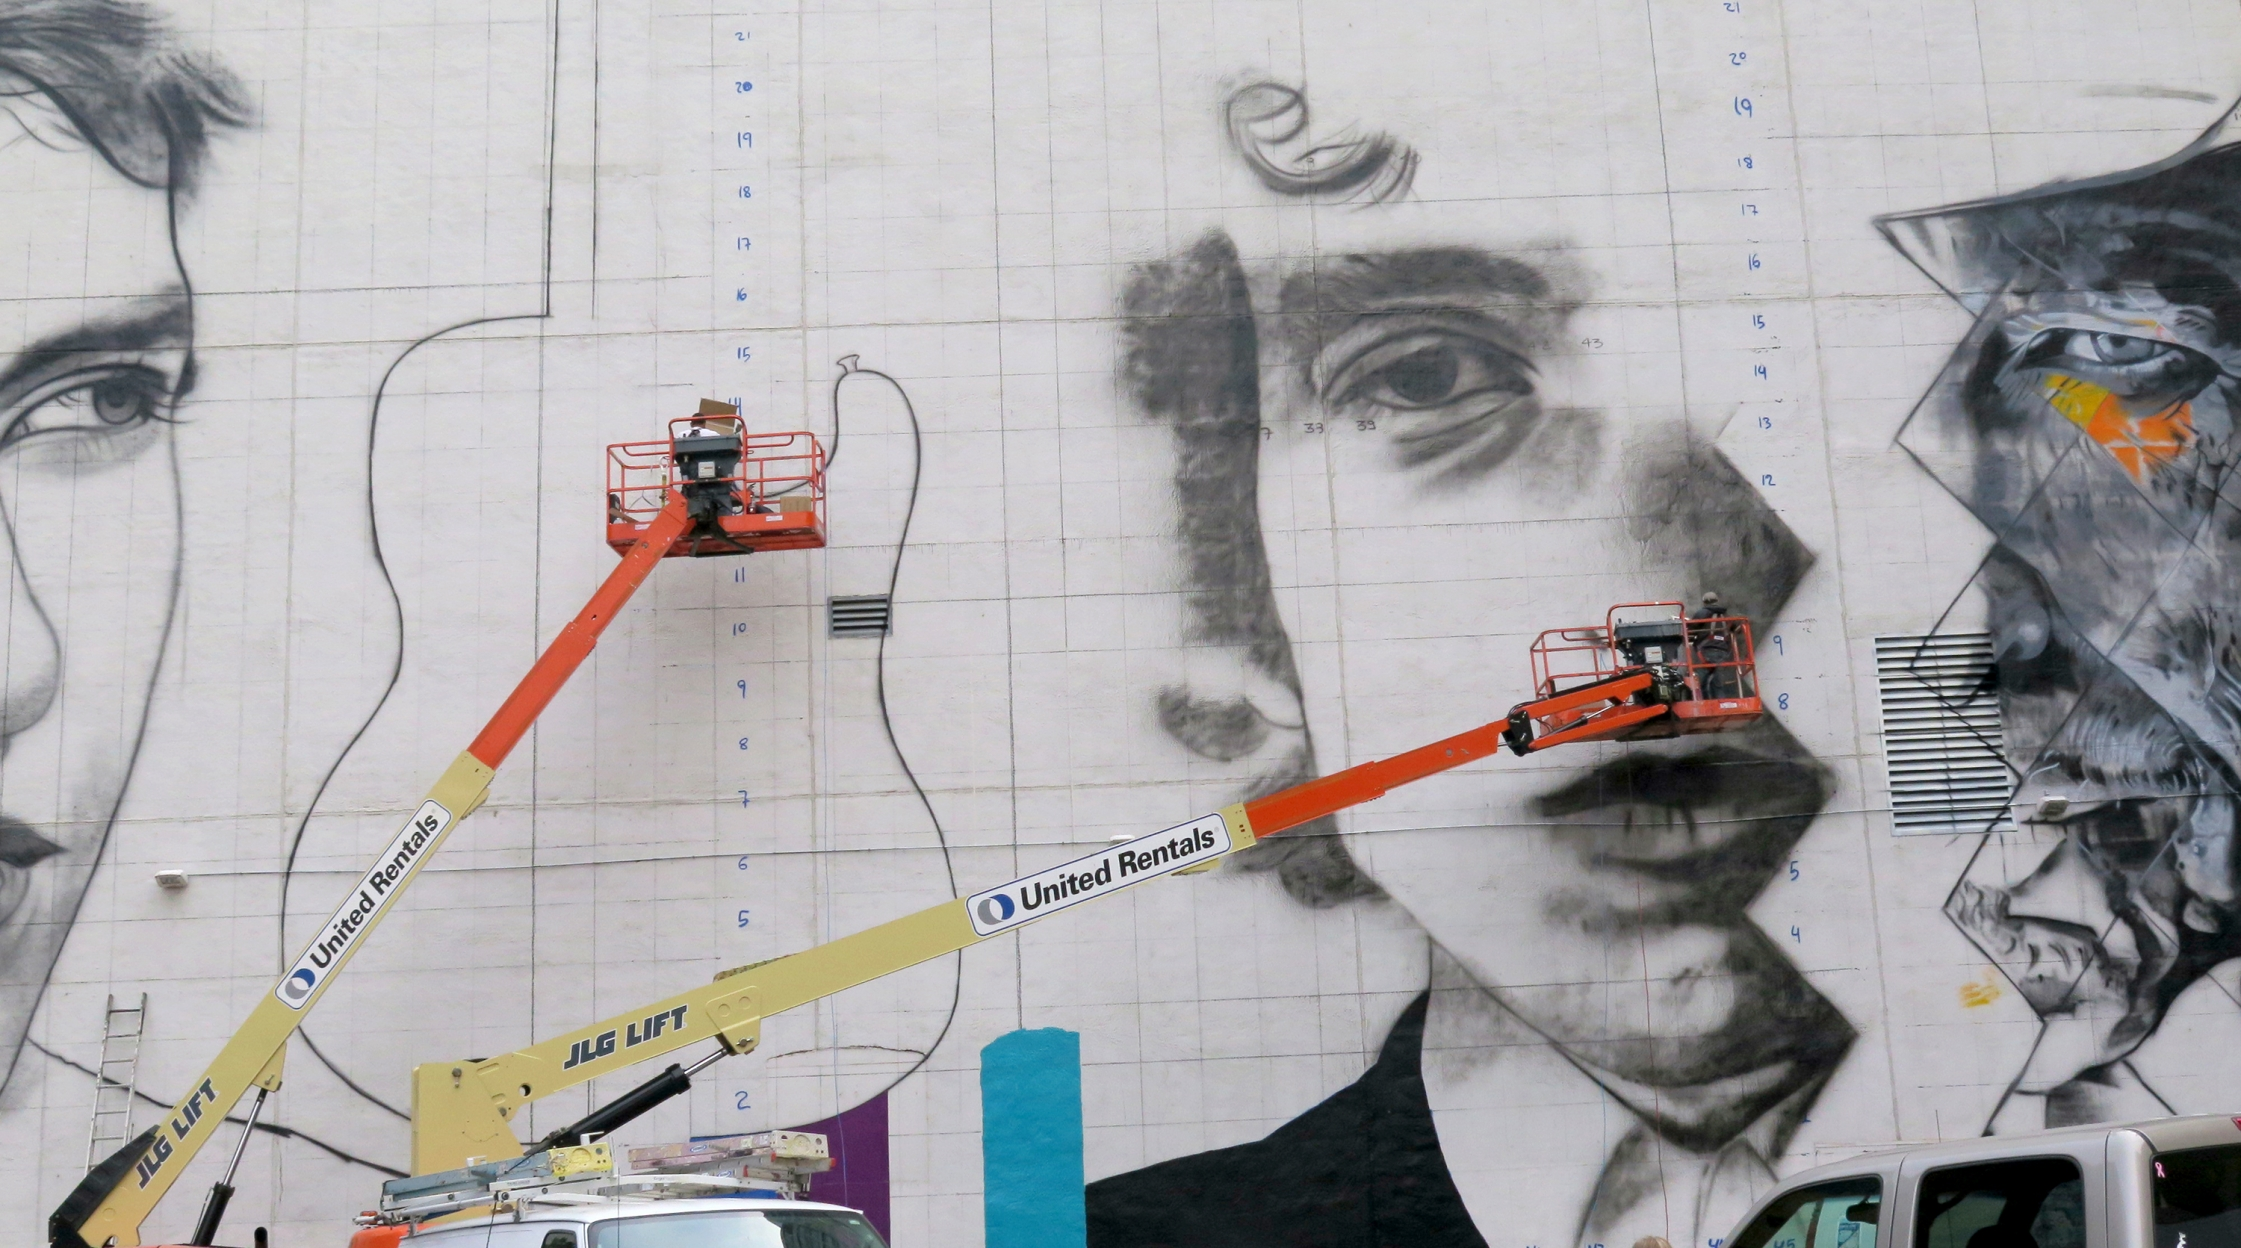 The work has begun and will continue over the next two weeks as Brazilian artist Eduardo Kobra and his team of five artists -- three from Brazil and two from Minnesota -- attack the blank wall using boom lifts and air compressors to create a three-paneled image of musician Bob Dylan.